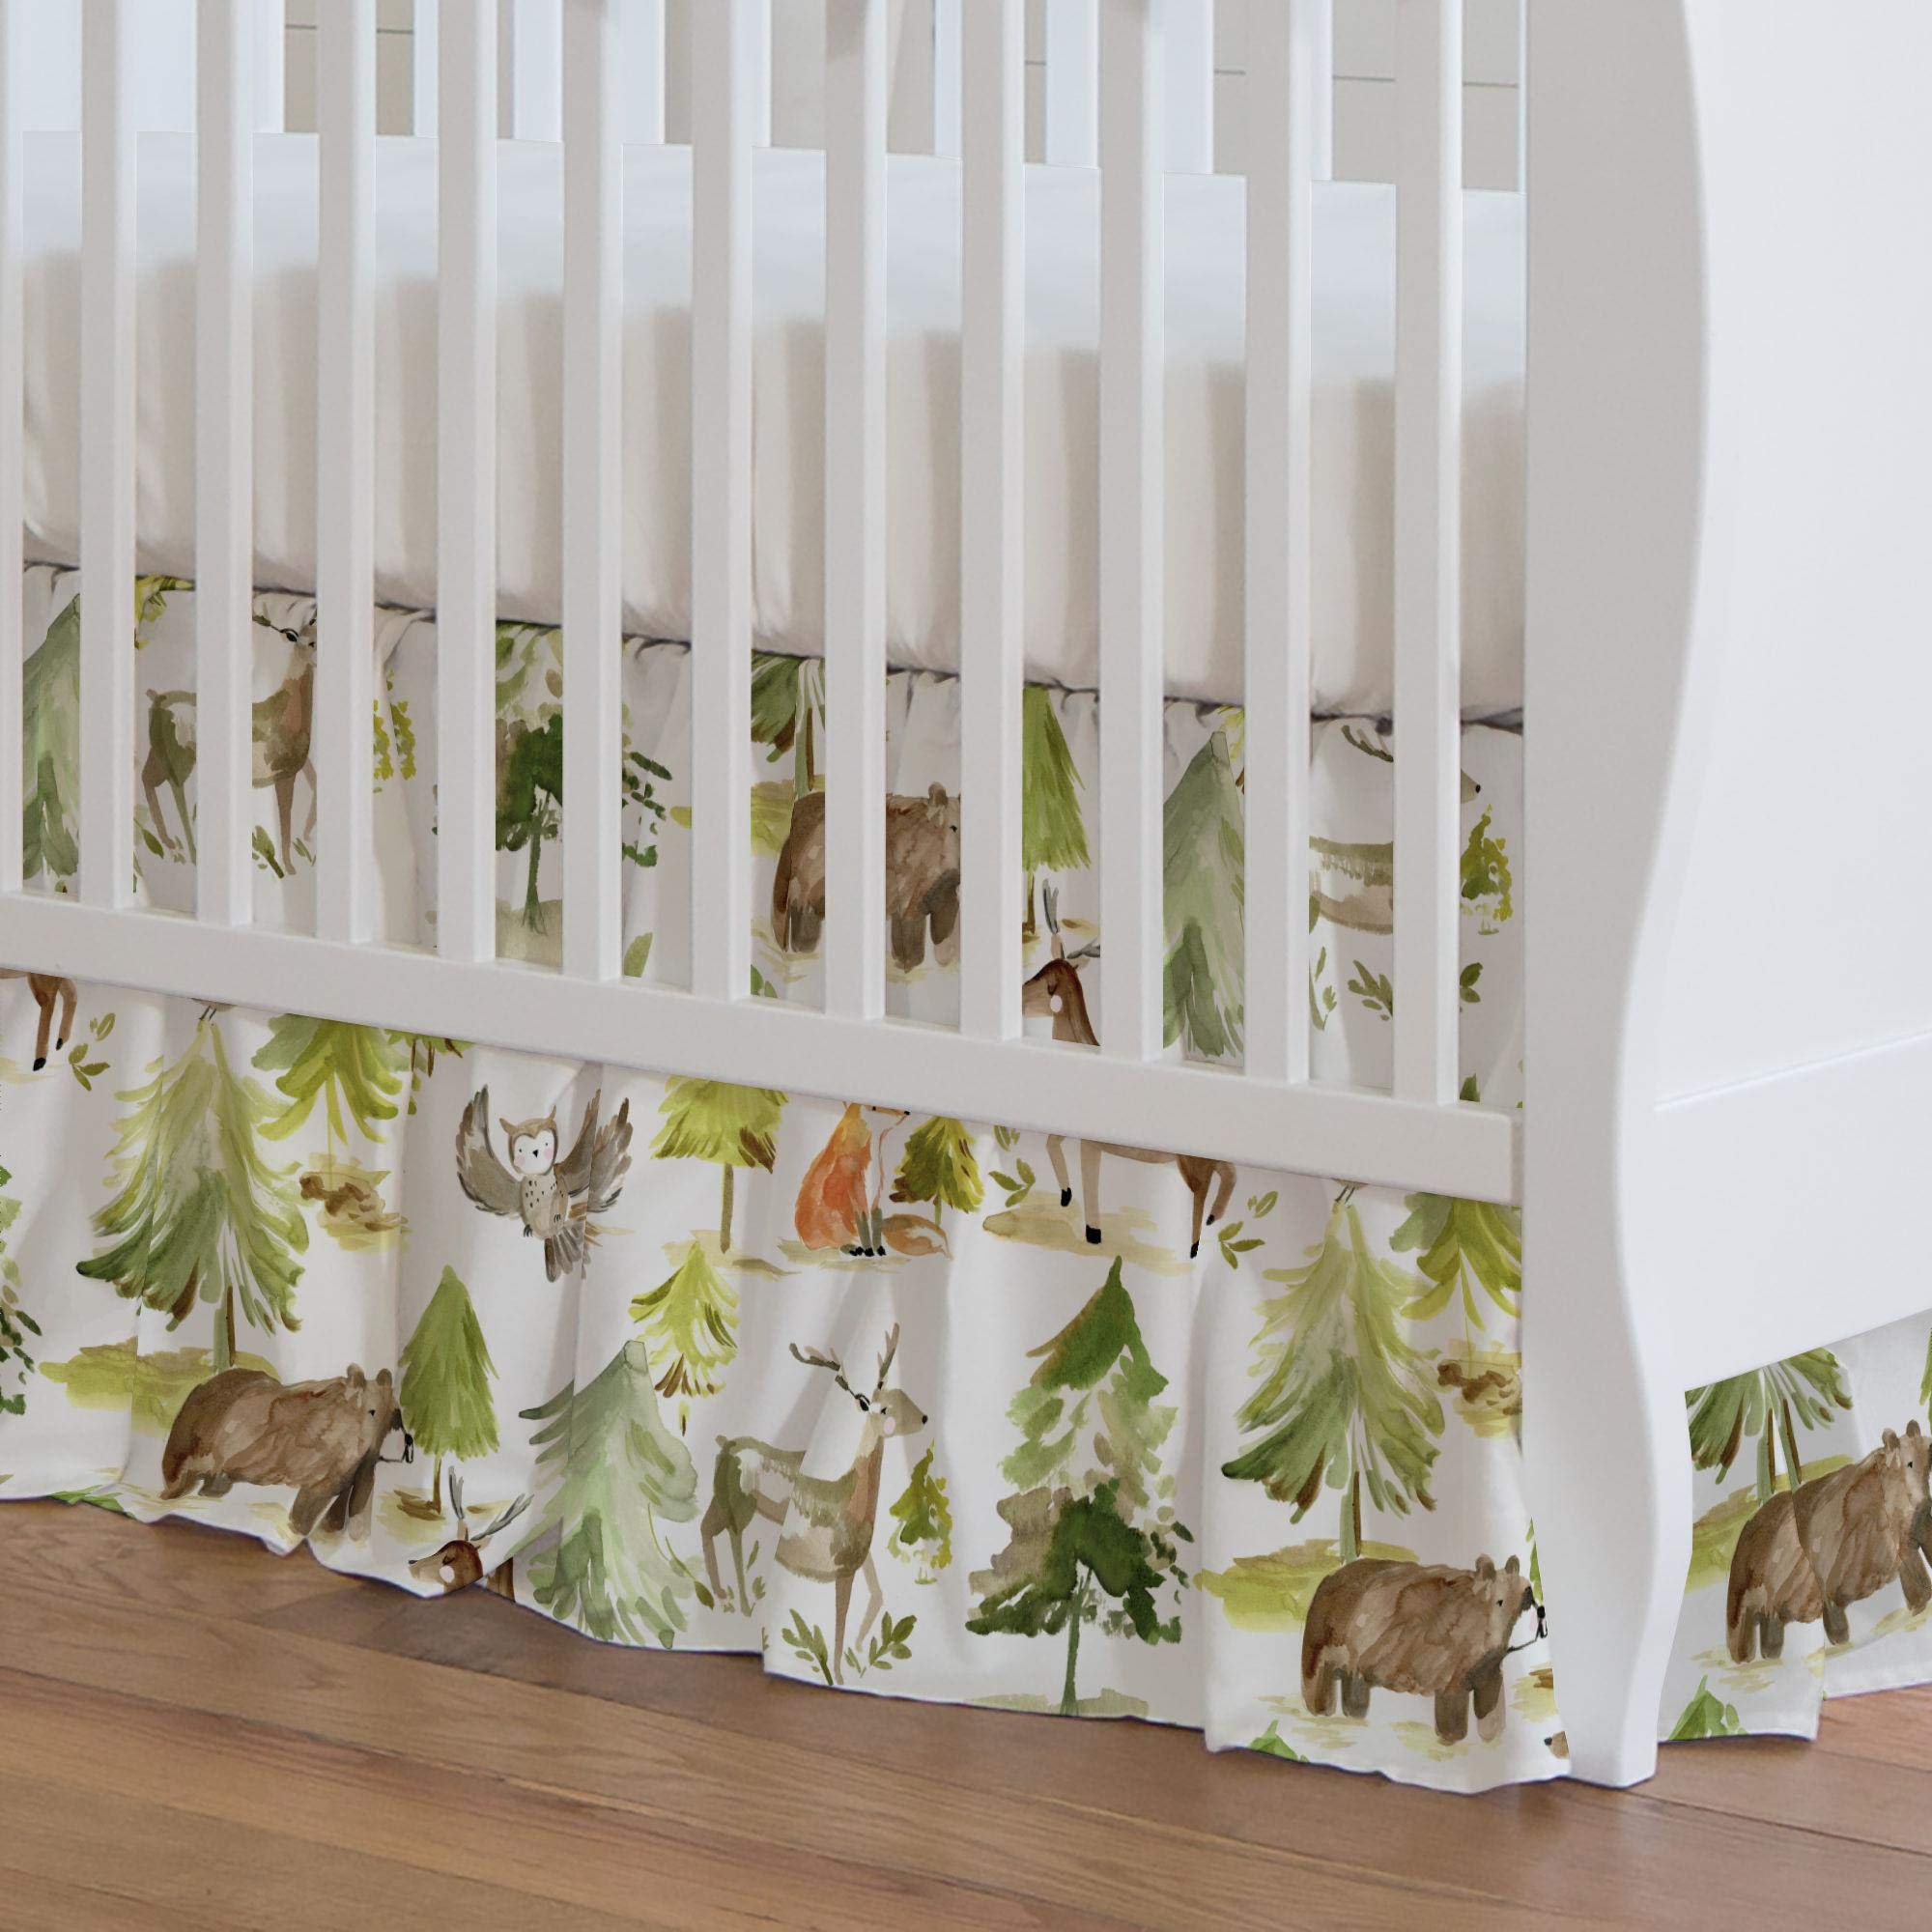 Carousel Designs Painted Forest Crib Skirt 17-Inch Gathered 17-Inch Length - Organic 100% Cotton Crib Skirt - Made in The USA by Carousel Designs